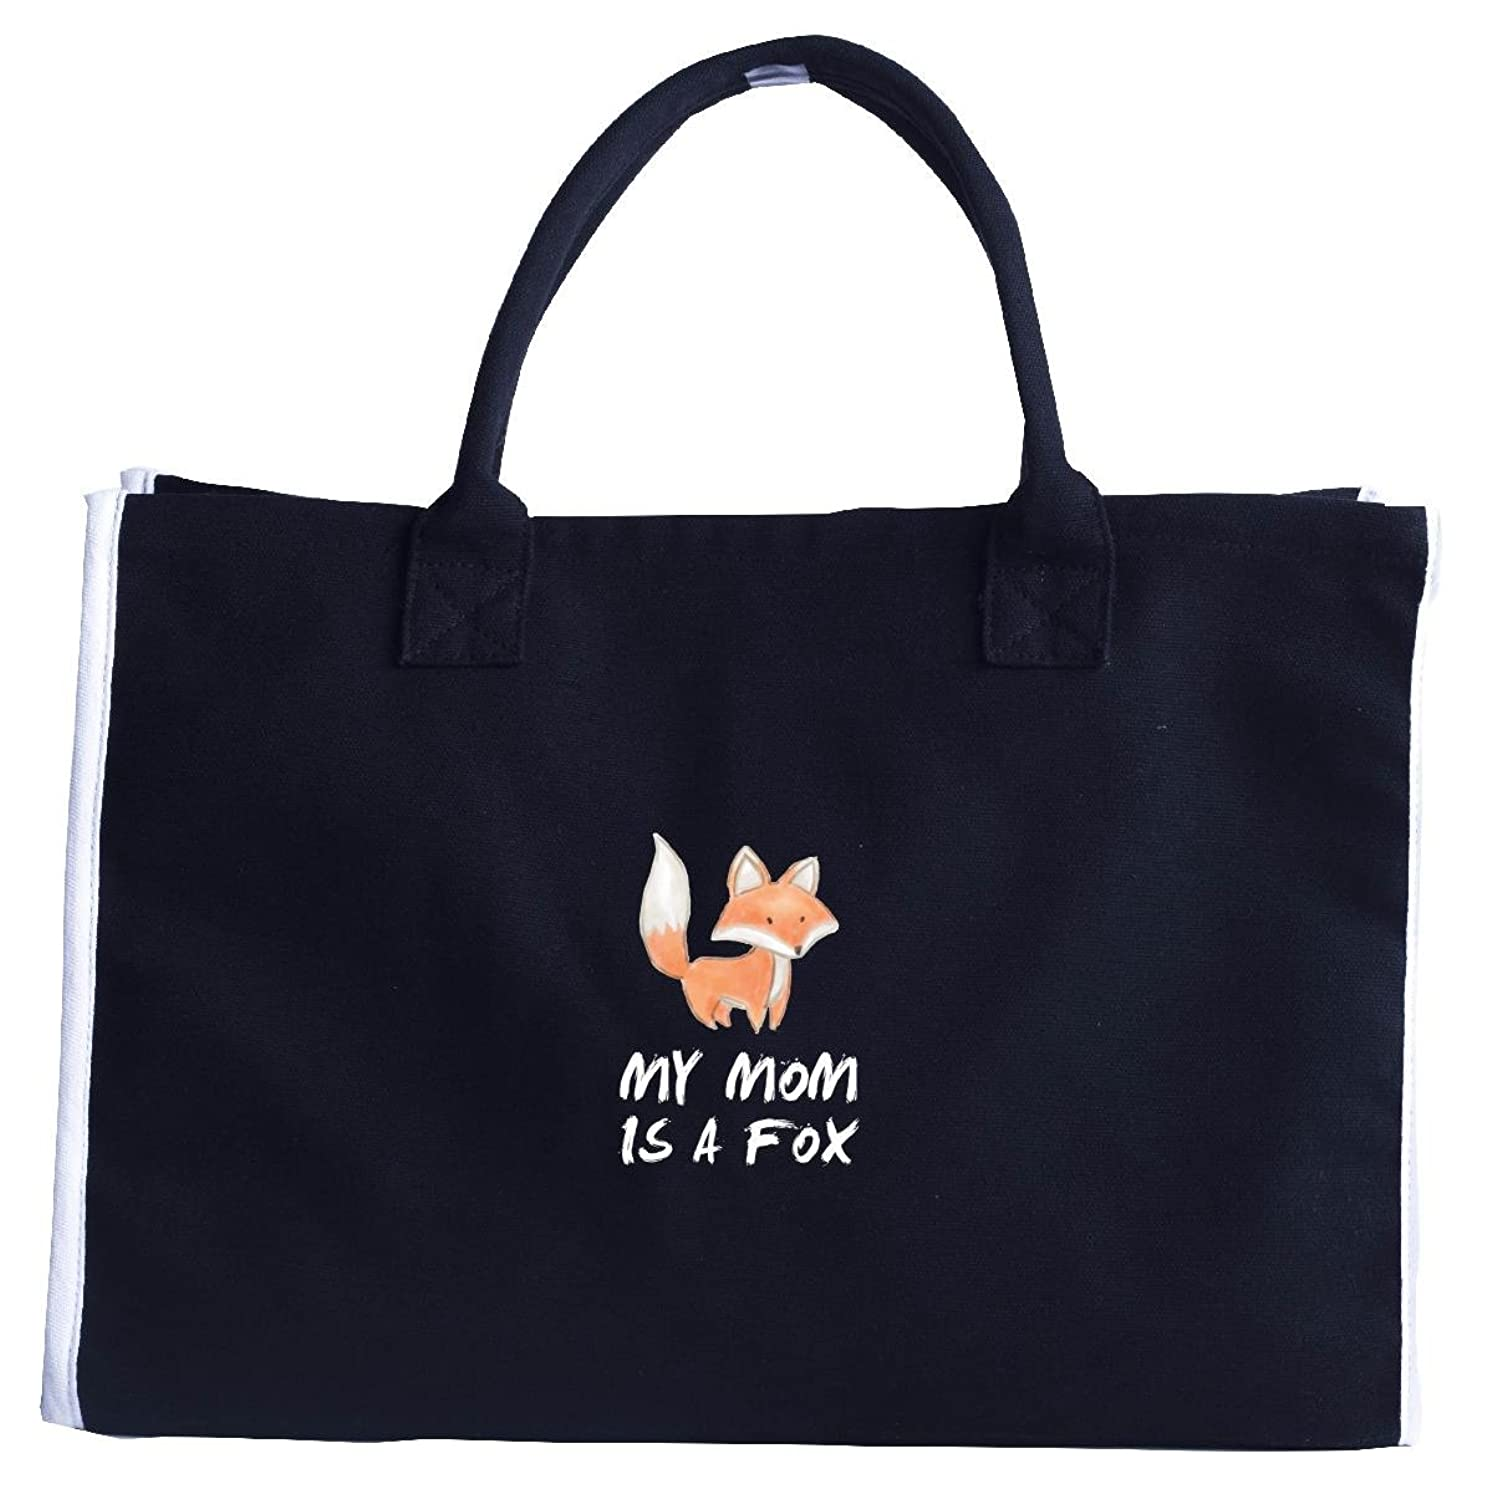 My Mom Is A Fox Great Gifts For Any Mother Son Daughter - Tote Bag